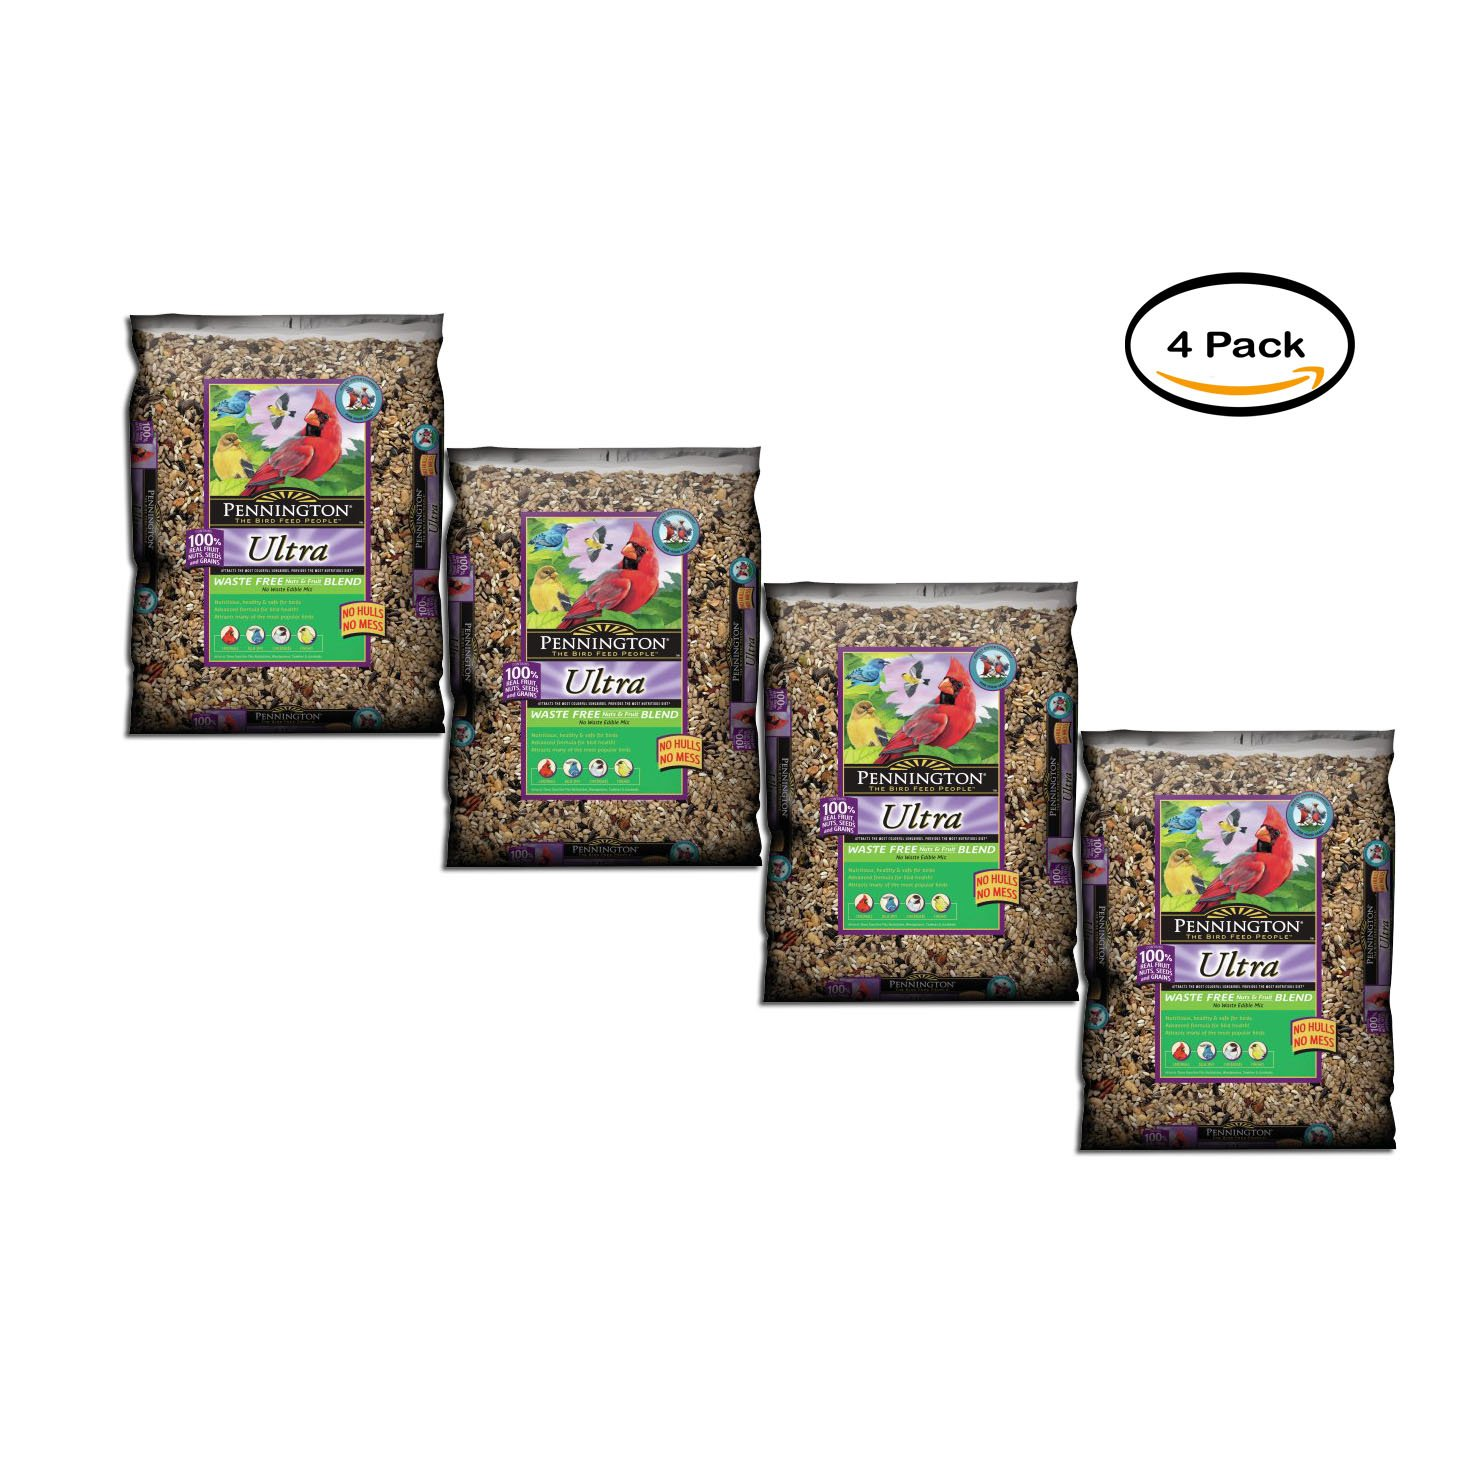 PACK OF 4 - Pennington Wild Bird Feed and Seed Ultra Nuts and Fruit Waste Free, 6.0 LB by Pennington